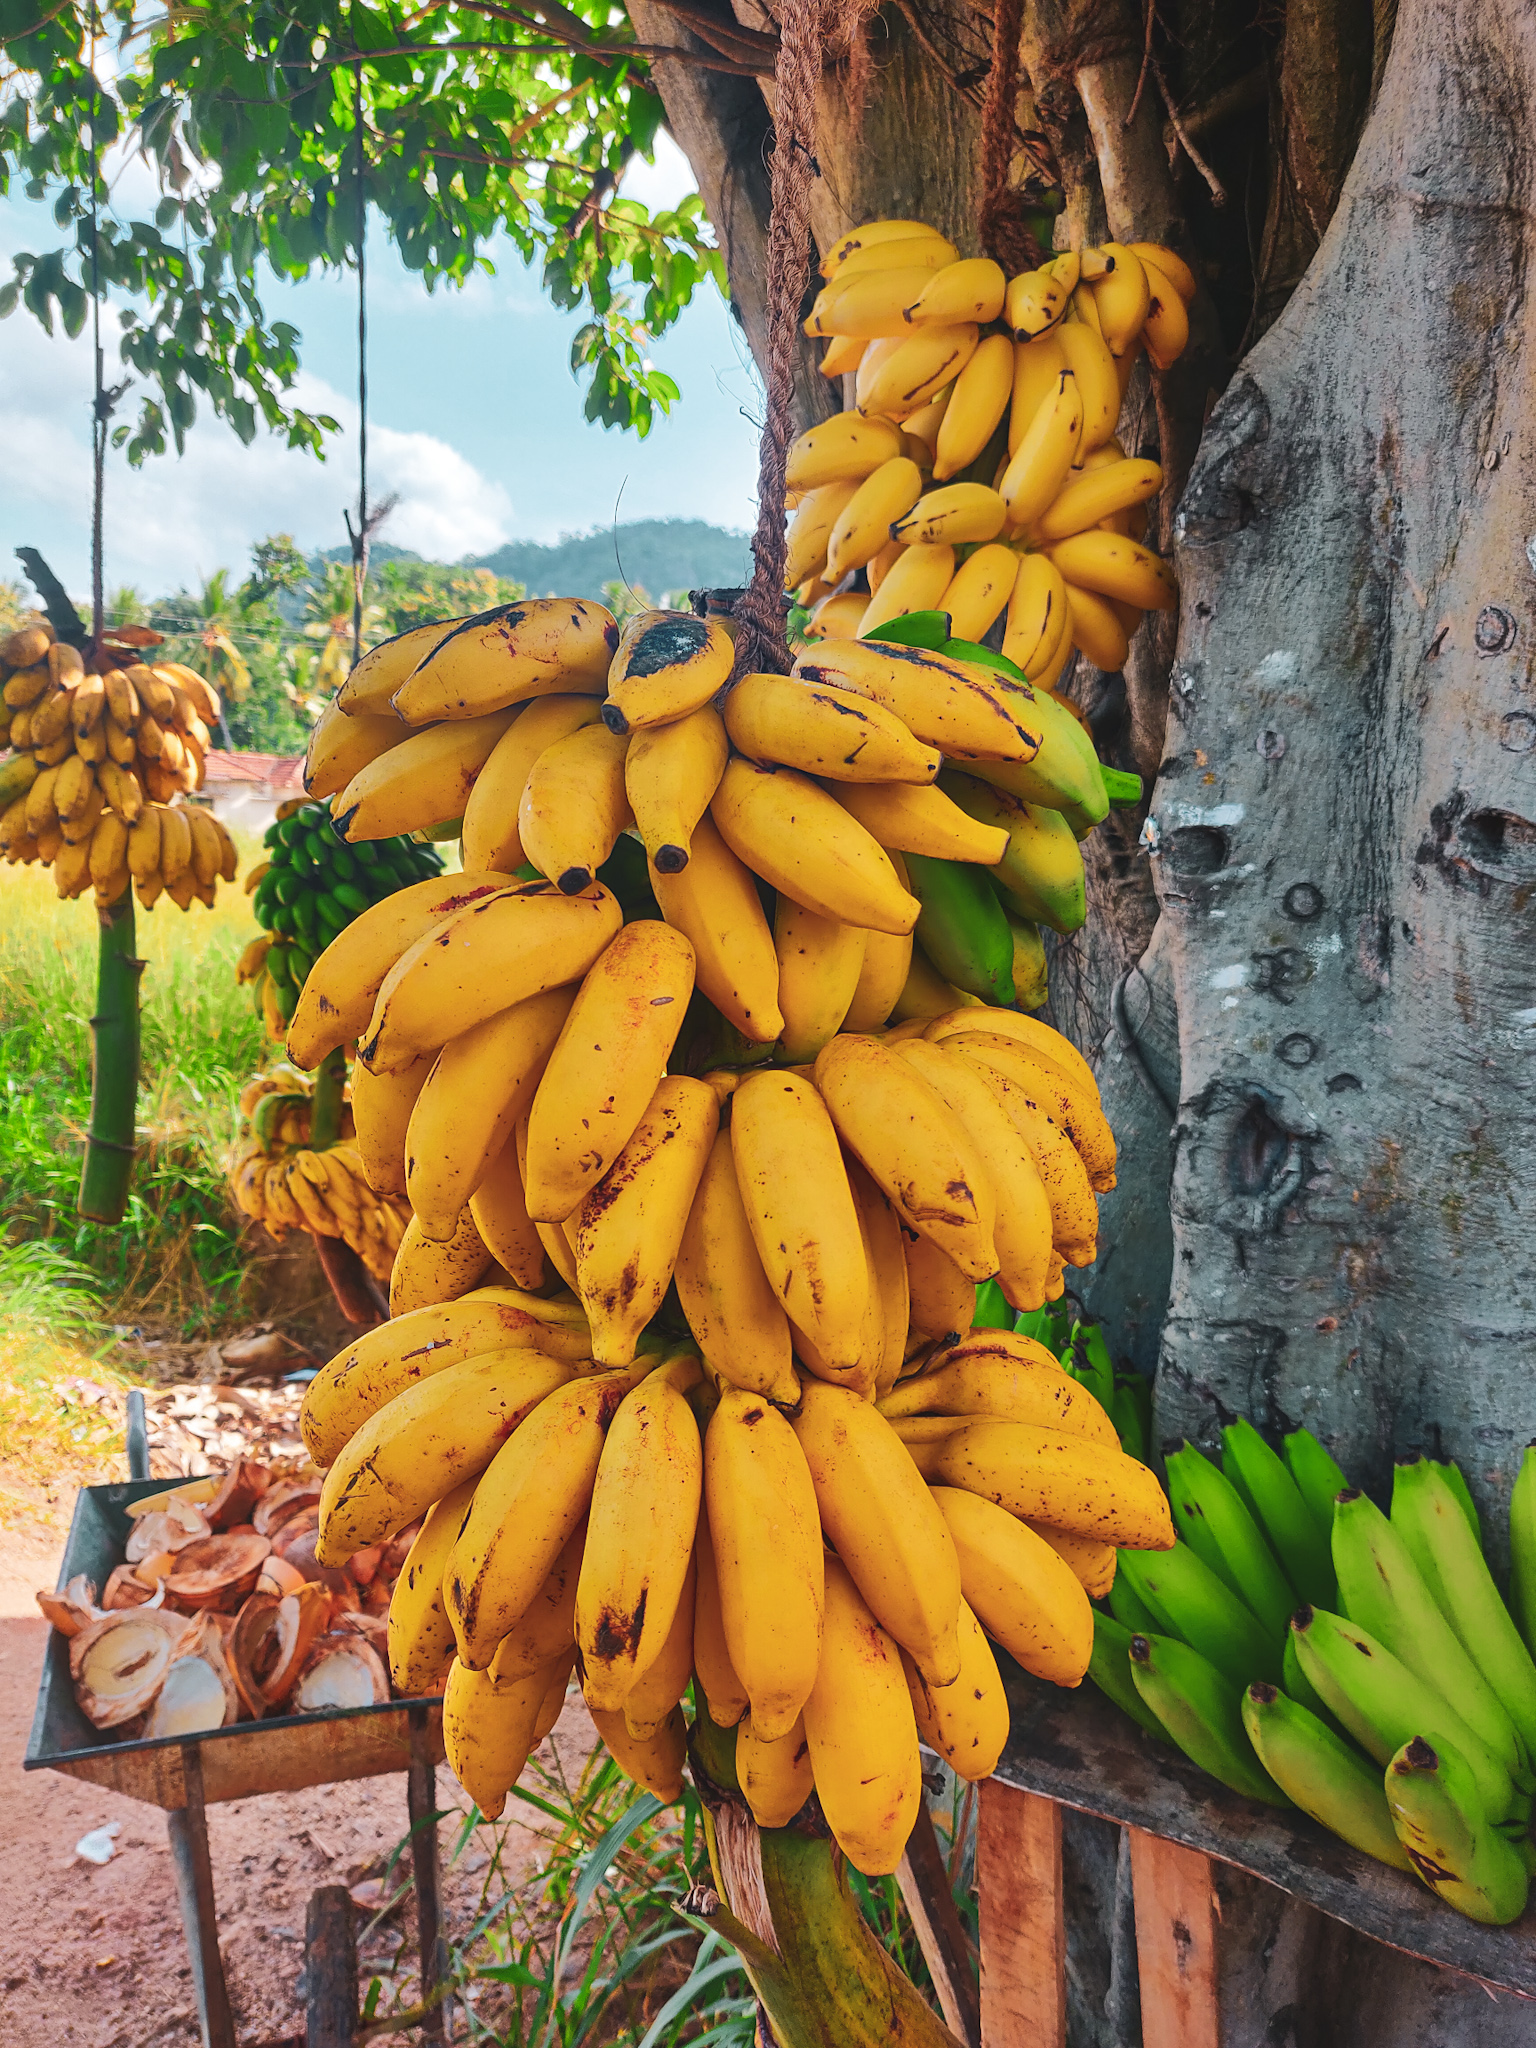 Bananas in Sri Lanka